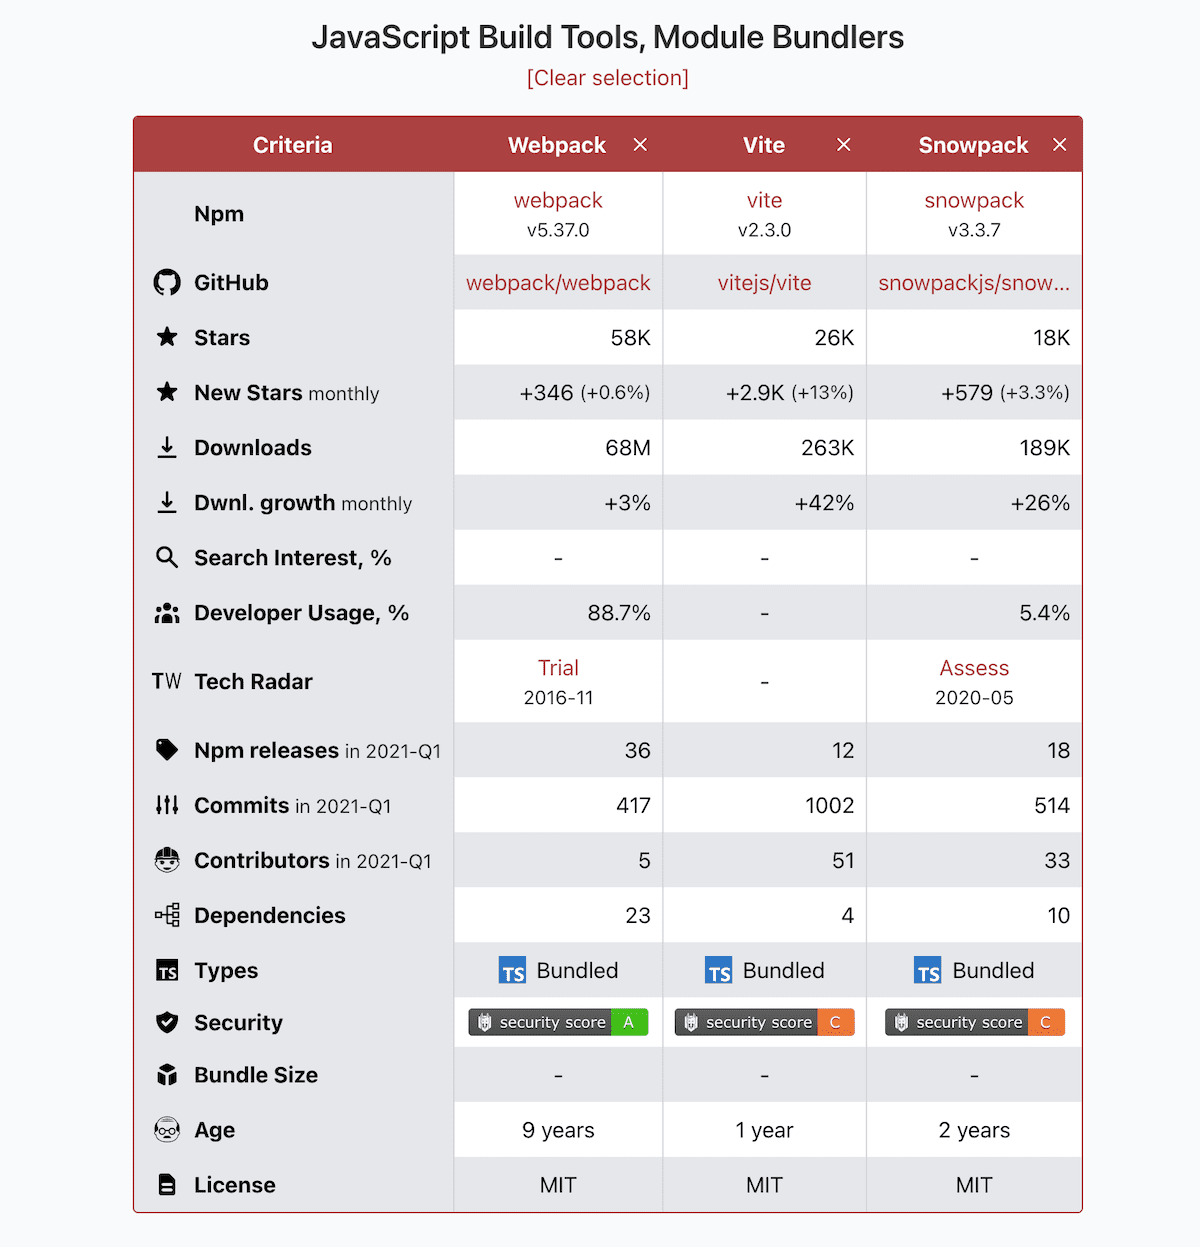 a screenshot of Moiva.io's new table view with data for Webpack, Vite and Snowpack